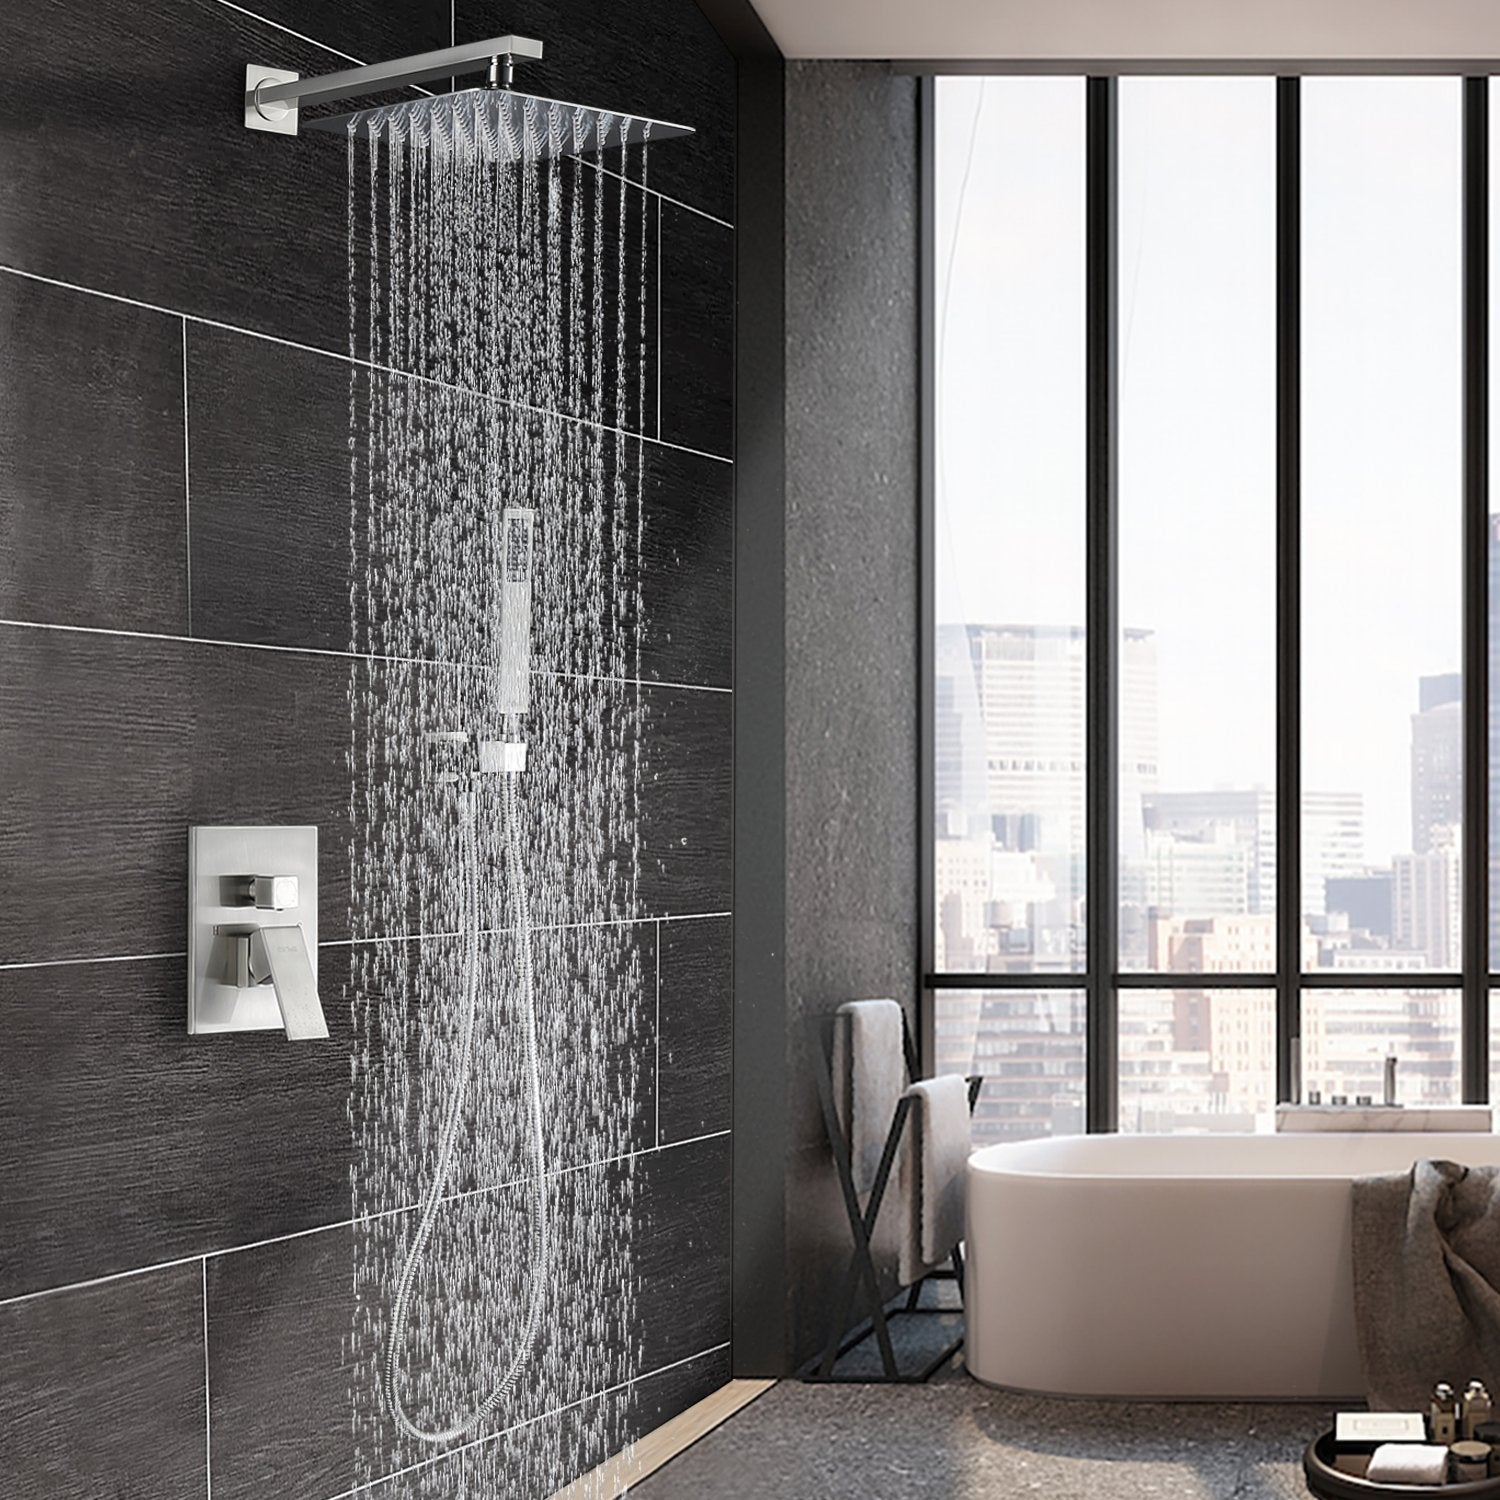 Esnbia Luxury Rain Shower System Wall Mounted Shower Combo Set With High  Pressure 12 Inch Square Rain Shower Head And Handheld Shower Faucet Set  Brushed ...